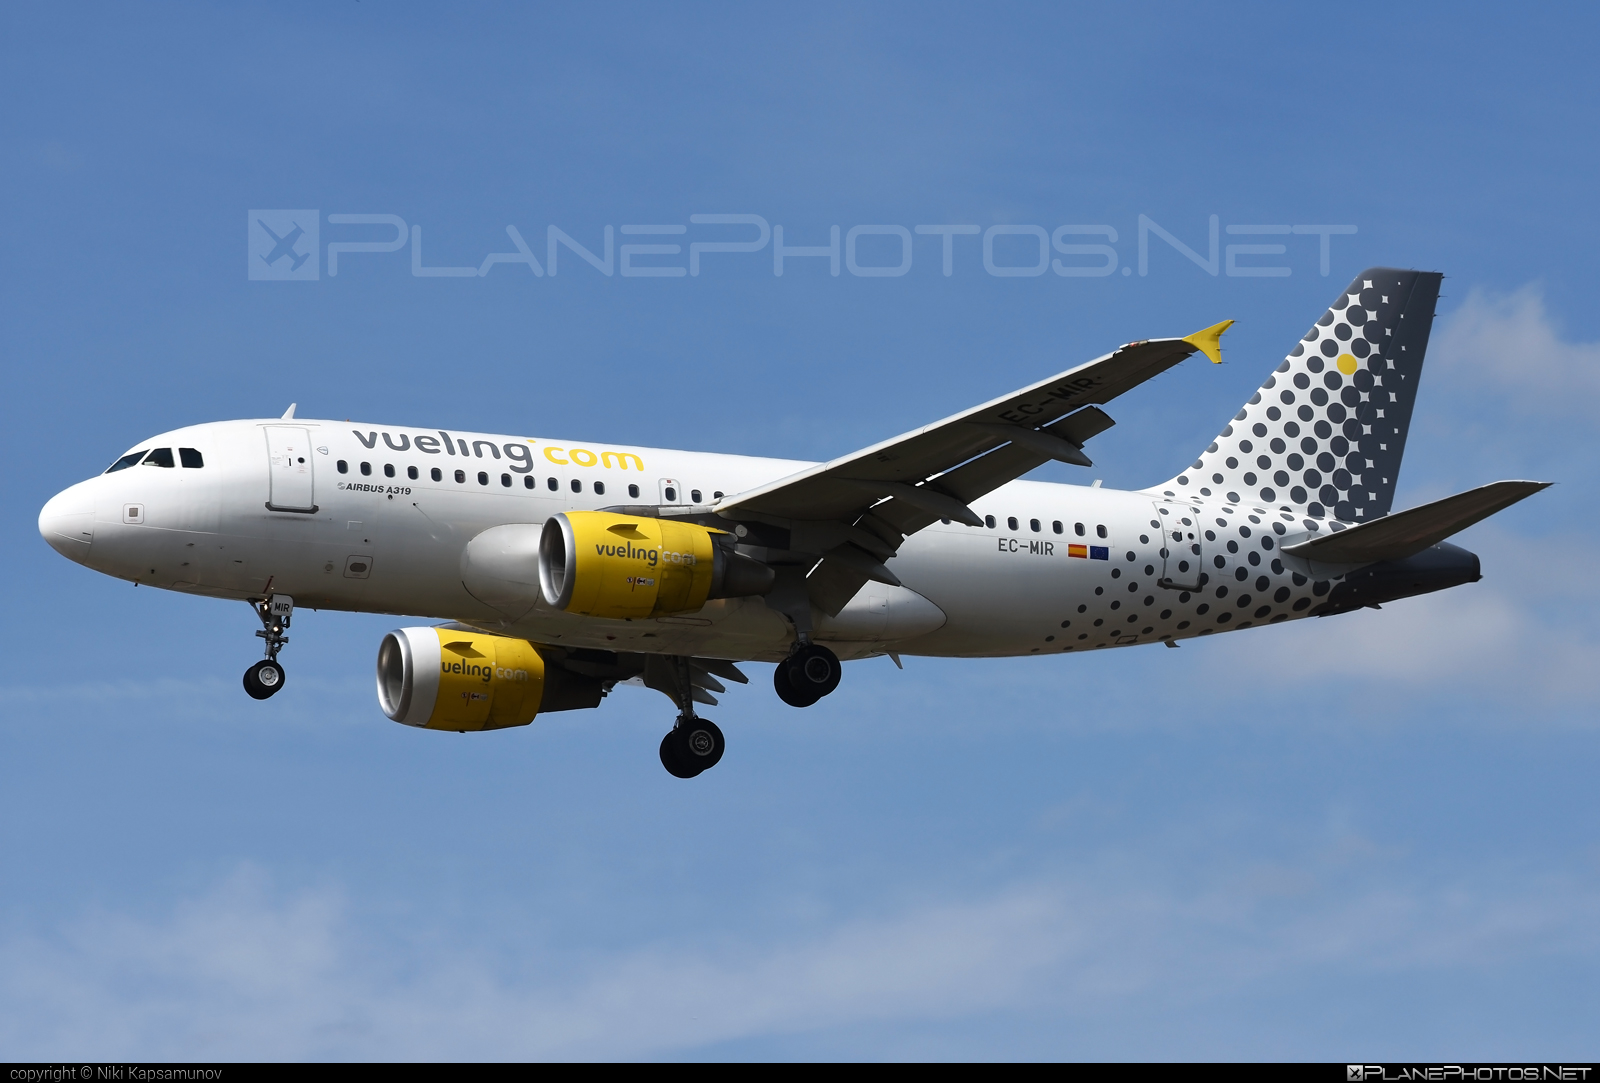 Airbus A319-111 - EC-MIR operated by Vueling Airlines #a319 #a320family #airbus #airbus319 #vueling #vuelingairlines